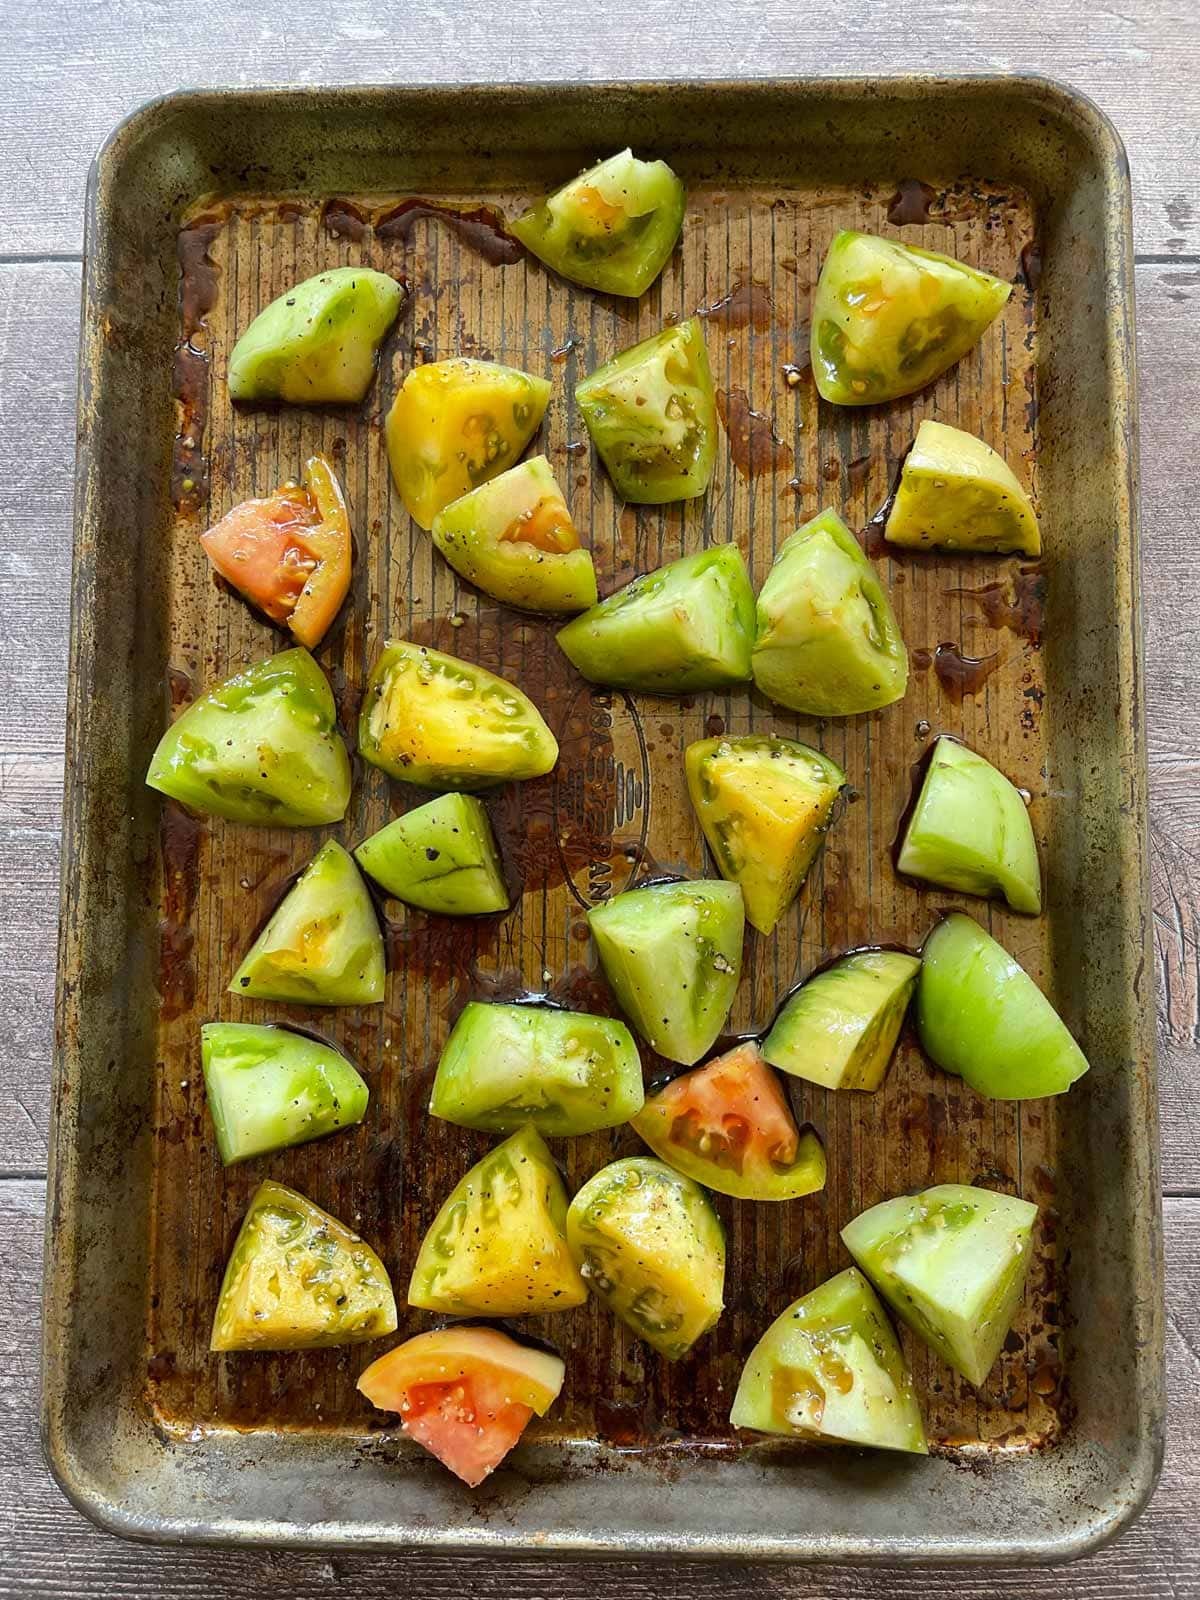 Uncooked green tomatoes on baking sheet